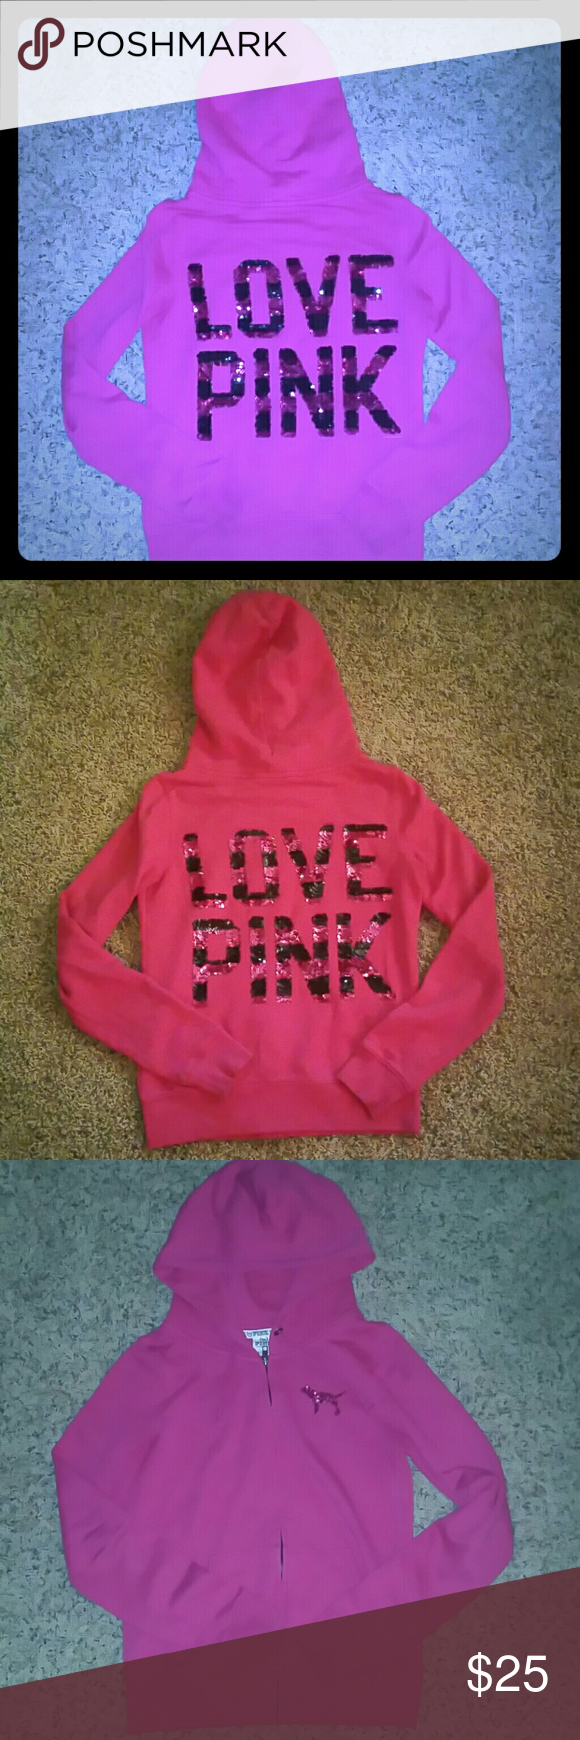 💕VS PINK BLING FULL ZIP HOODIE💕 💕VS PINK STRIPED BLING FULL ZIP HOODIE  💕SIZE XS 💕TTS 💕NO FLAWS 💕NO HOLES, RIPS, OR STAINS 💕ONLY HAS LIL PILING (NOT NOTICEABLE WHEN ON) 💕ALL SEQUINS INTACT/NO MISSING SEQUINS  💕WILL BUNDLE 💕REASONABLE OFFERS WELCOME 💕UFT ALSO PINK Victoria's Secret Tops Sweatshirts & Hoodies